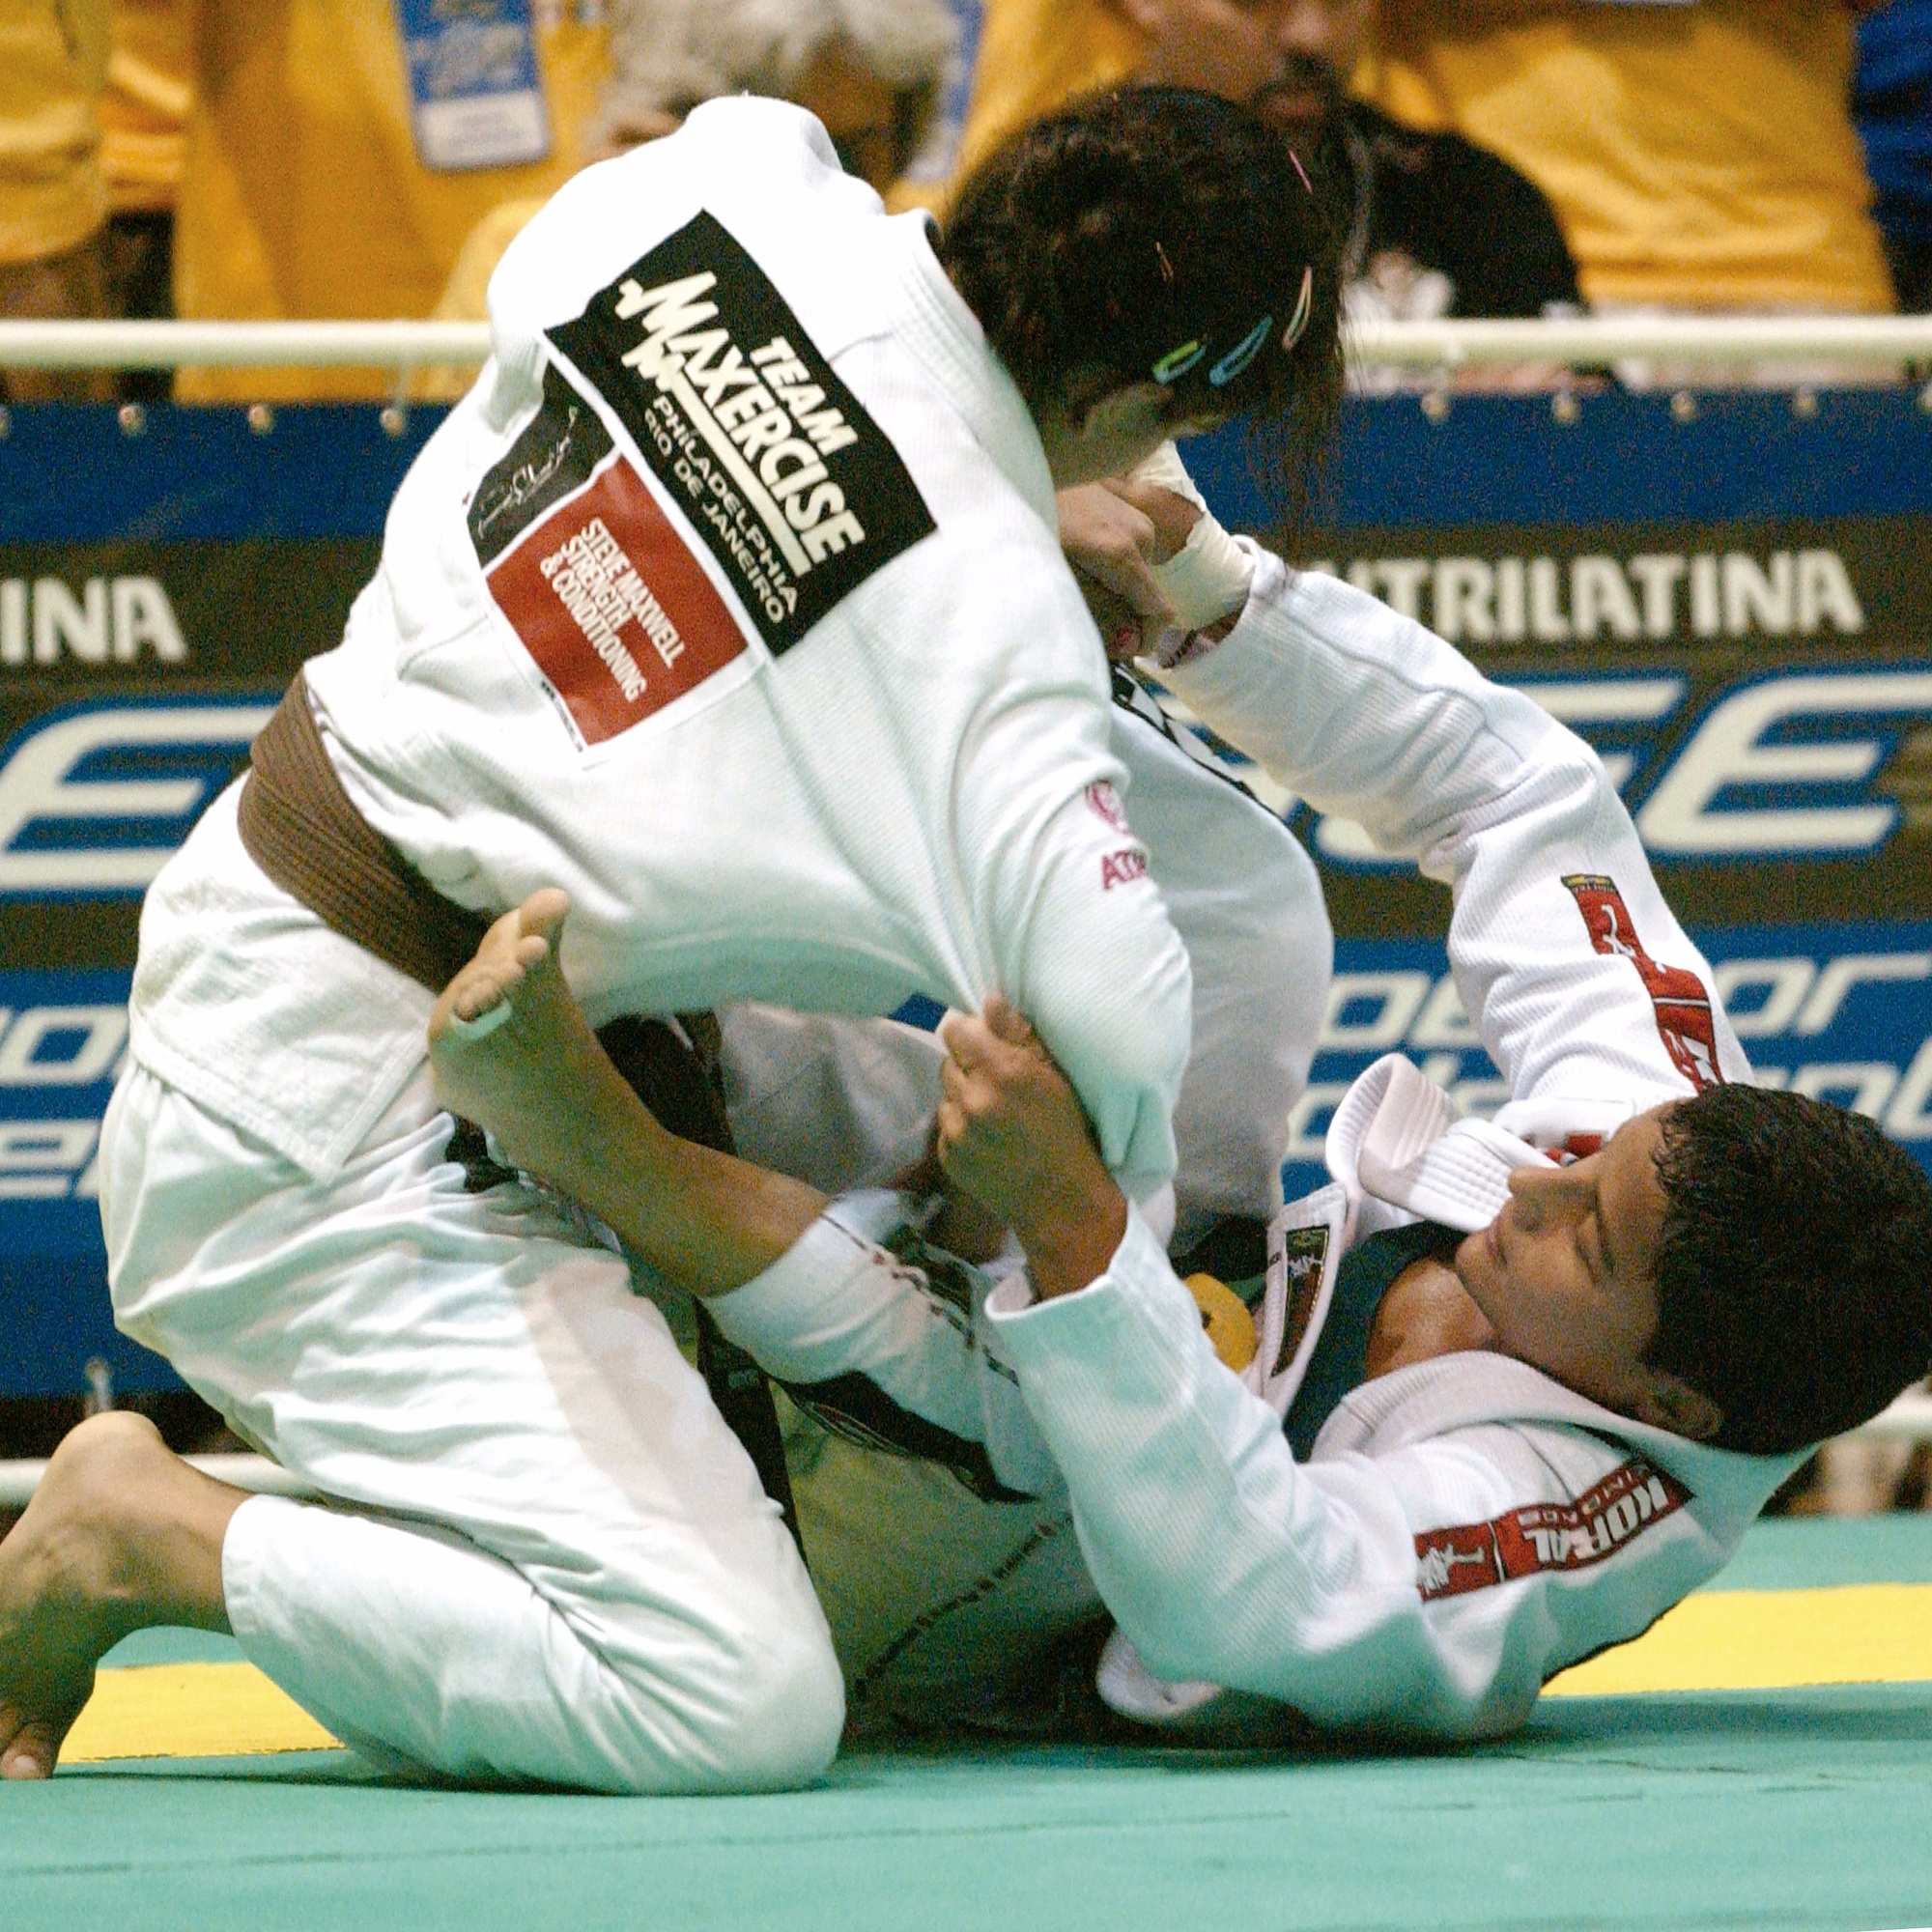 "Alessandra ""Leka"" Vieira is a Brazilian Jiu-Jitsu pioneer among the female athletes, conquering her first of the three BJJ world titles at the highest rank back in 1999. She is currently a mother of two and teaches at Checkmat school in Valencia, CA. Get to know more about Leka <a href=""http://www.bjjheroes.com/bjj-fighters/leka-vieira"">here</a>."